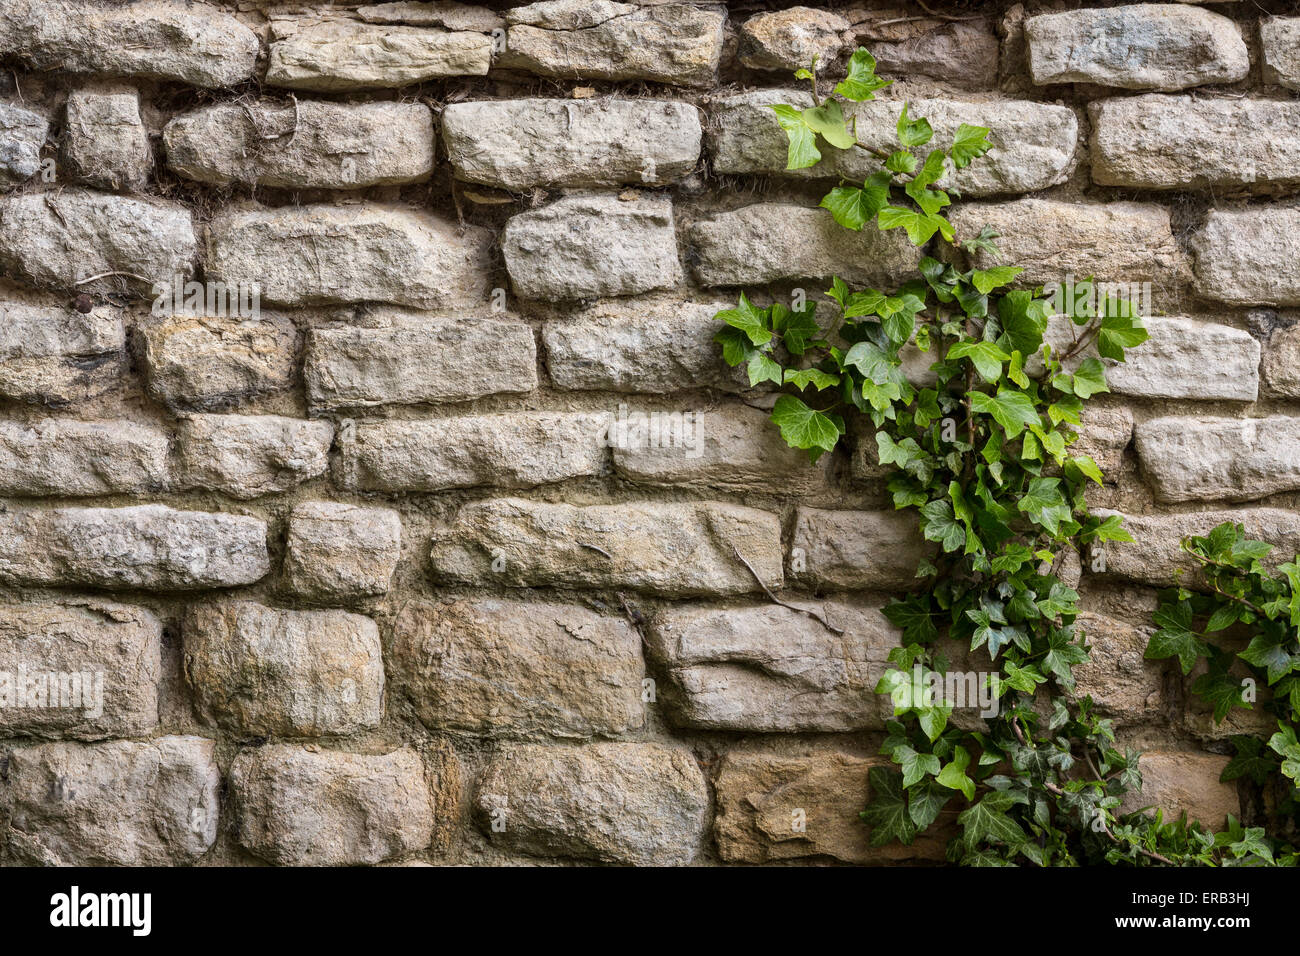 Backgrounds - An ancient stone wall with ivy growing up it. - Stock Image